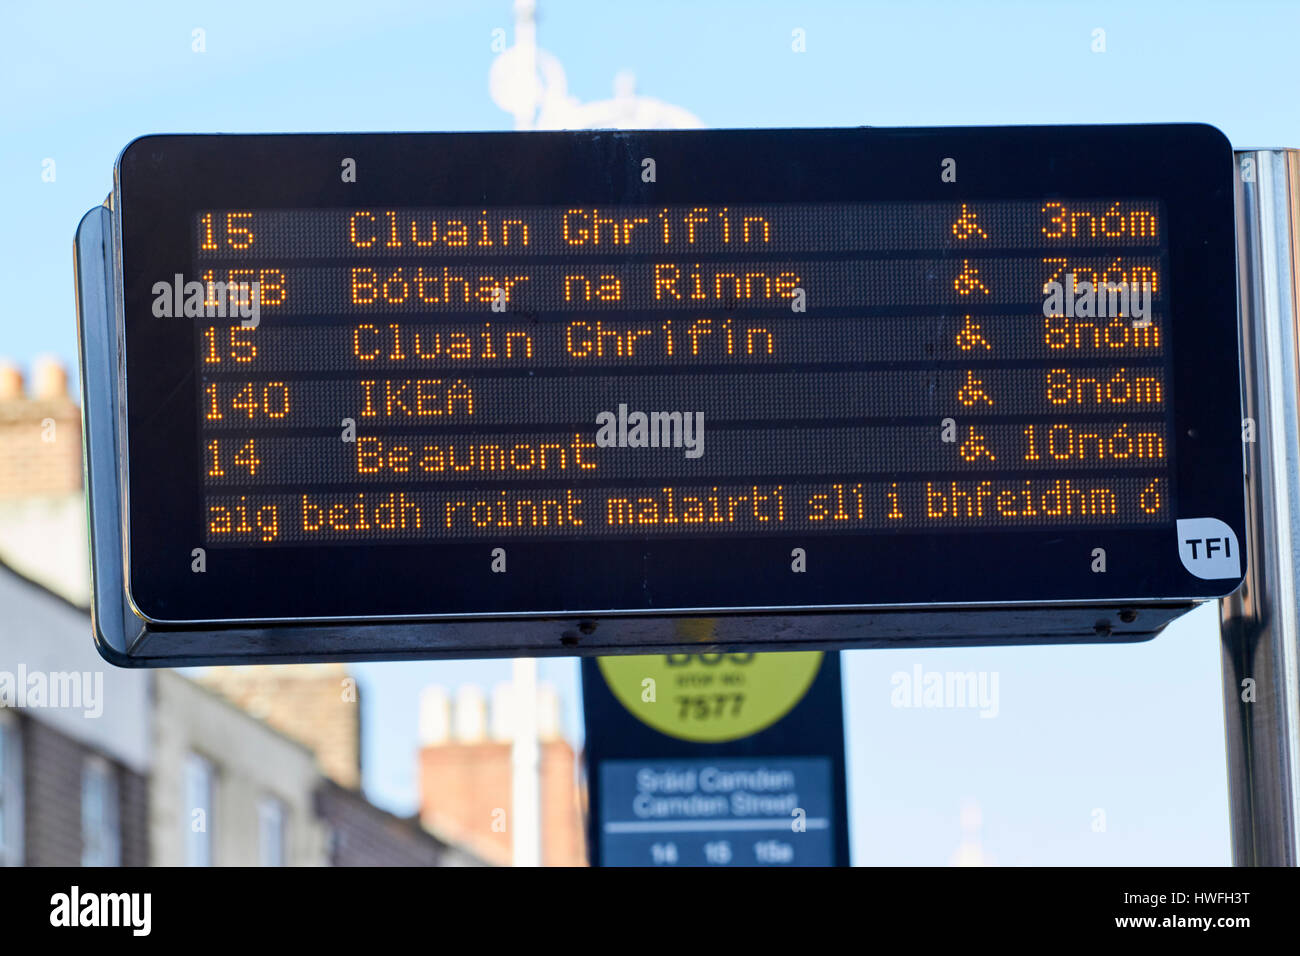 electronic sign with bus information in irish and times at city centre bus stop Dublin Republic of Ireland Stock Photo